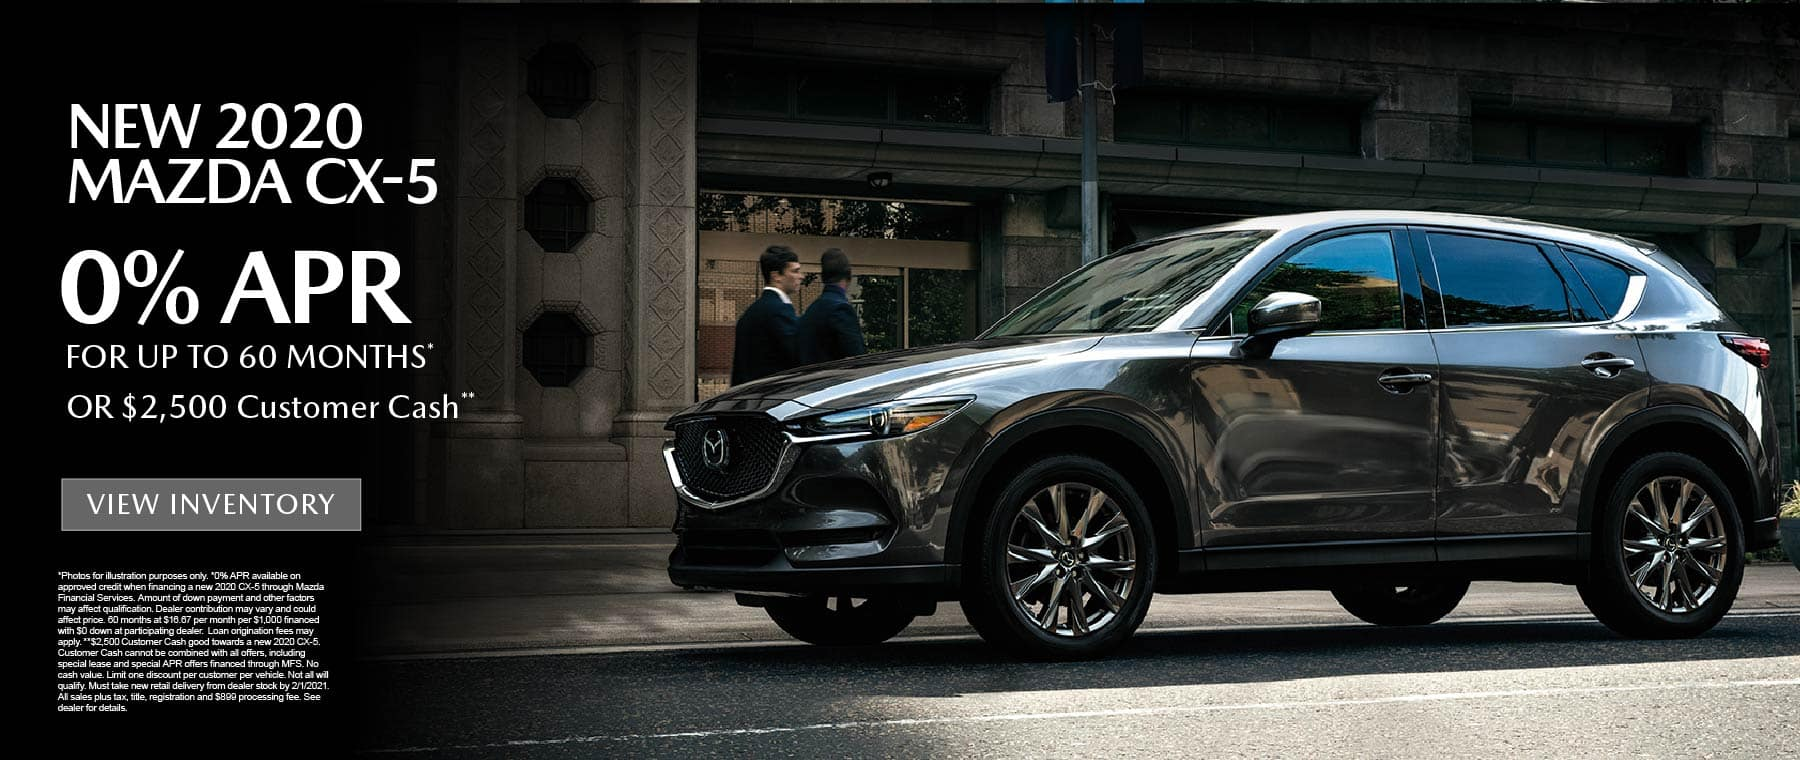 2020 Mazda CX-5 0% APR for up to 60 months. View Inventory